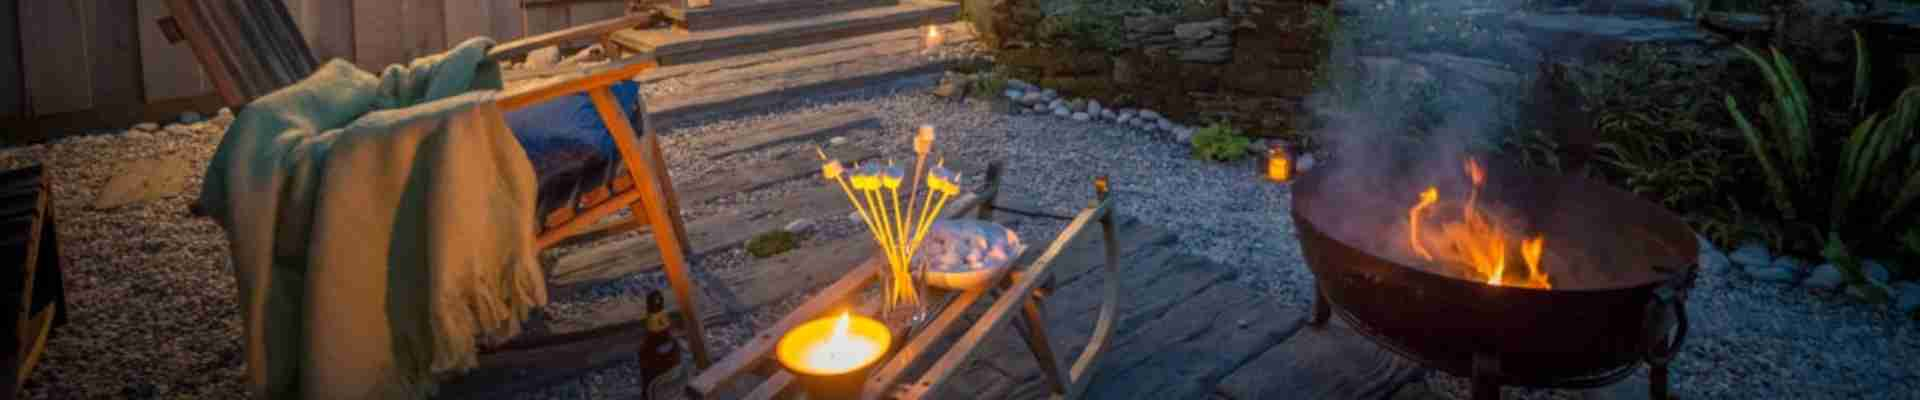 Holiday Cottages for Valentine's Day